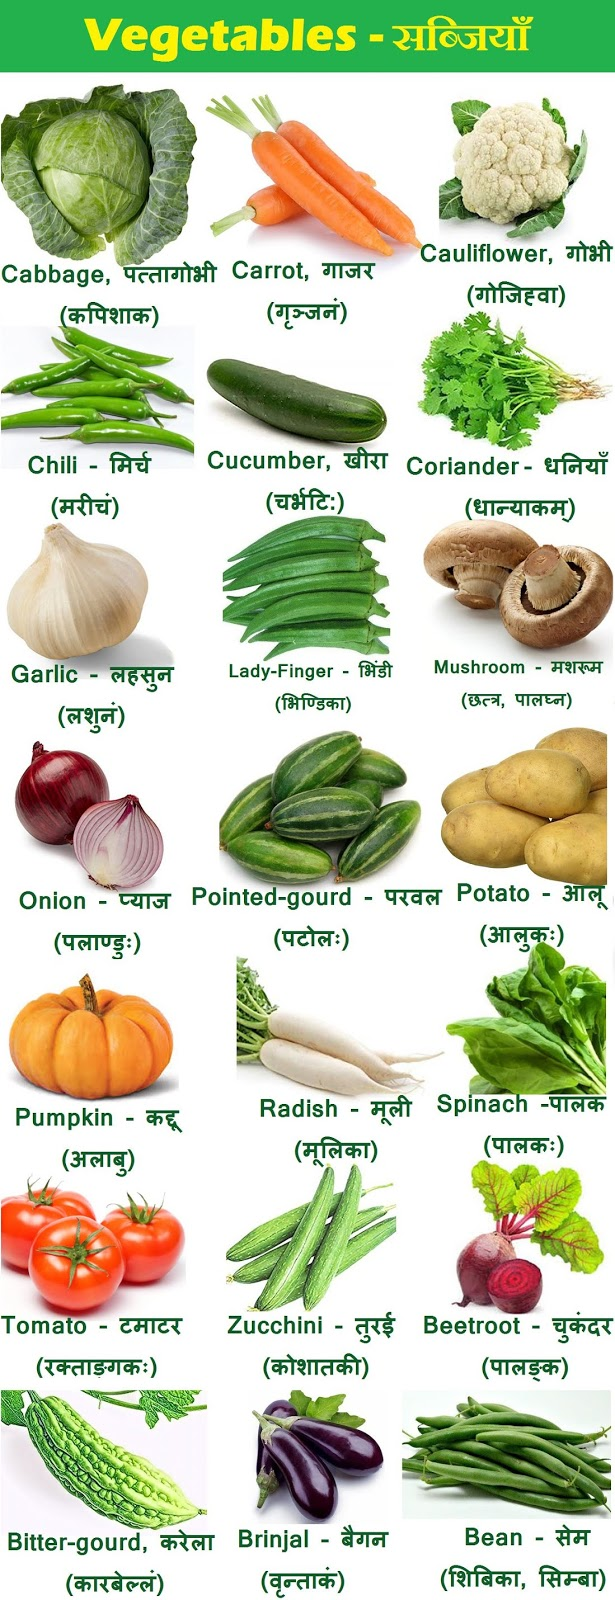 Vegetables Name in Hindi, Sanskrit and English Chart